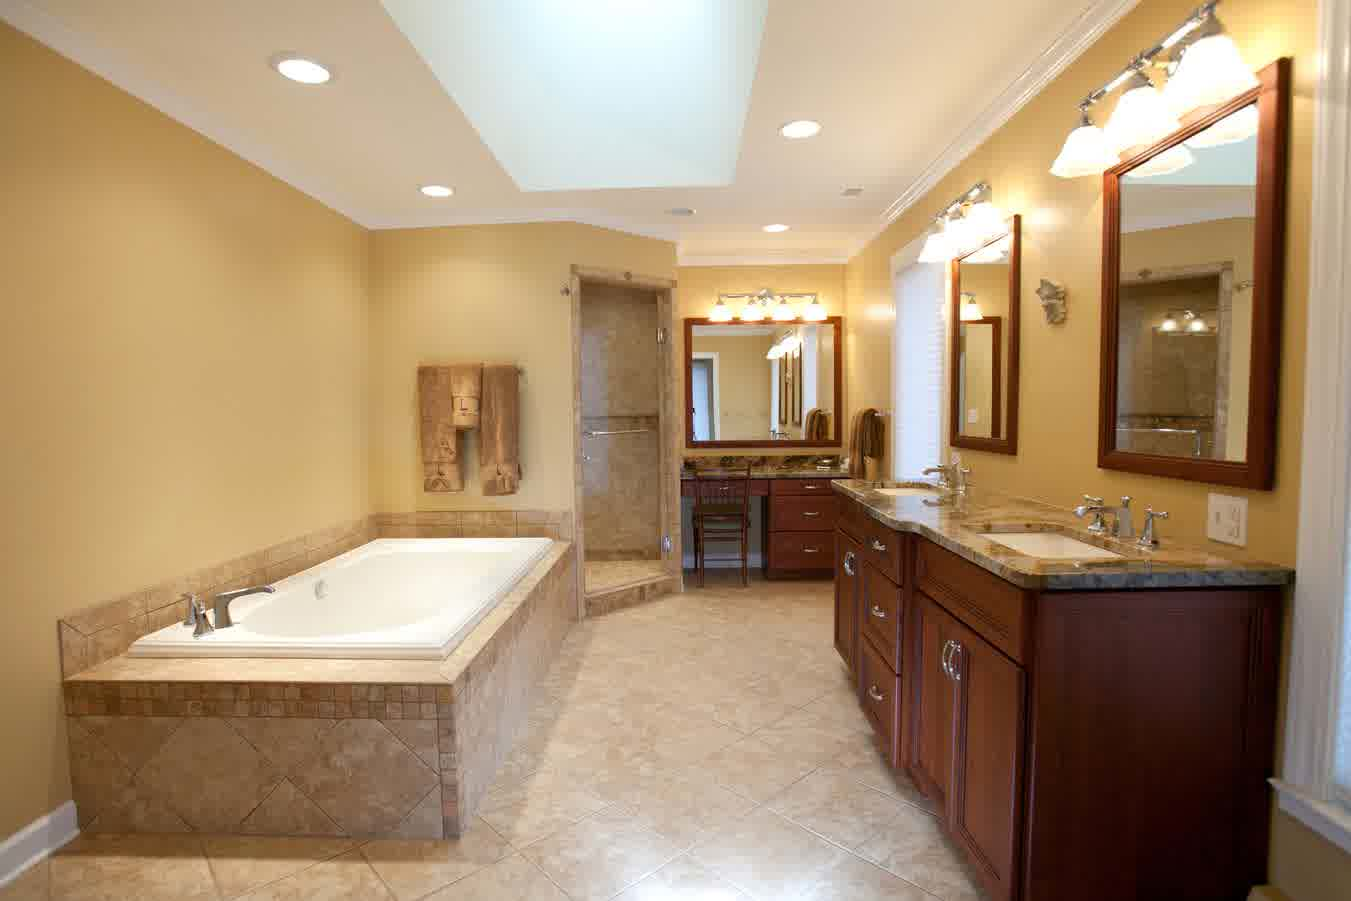 Amazing bathroom remodeling on a wise budget homesfeed for Amazing bathroom remodels